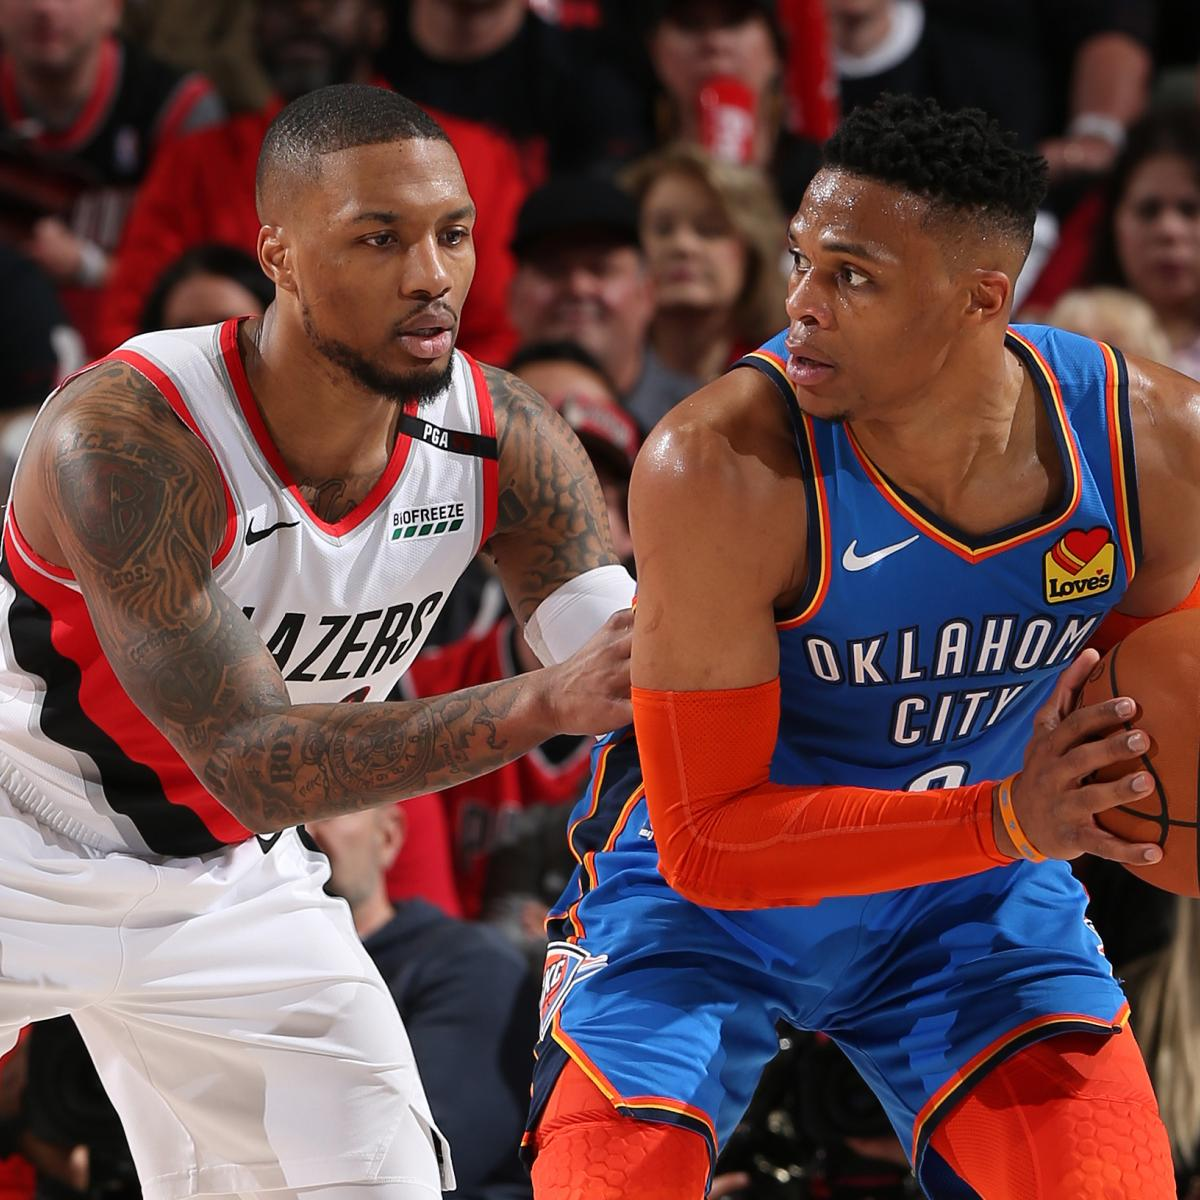 2019 NBA Playoff Rivalries That Will Stick In 2020